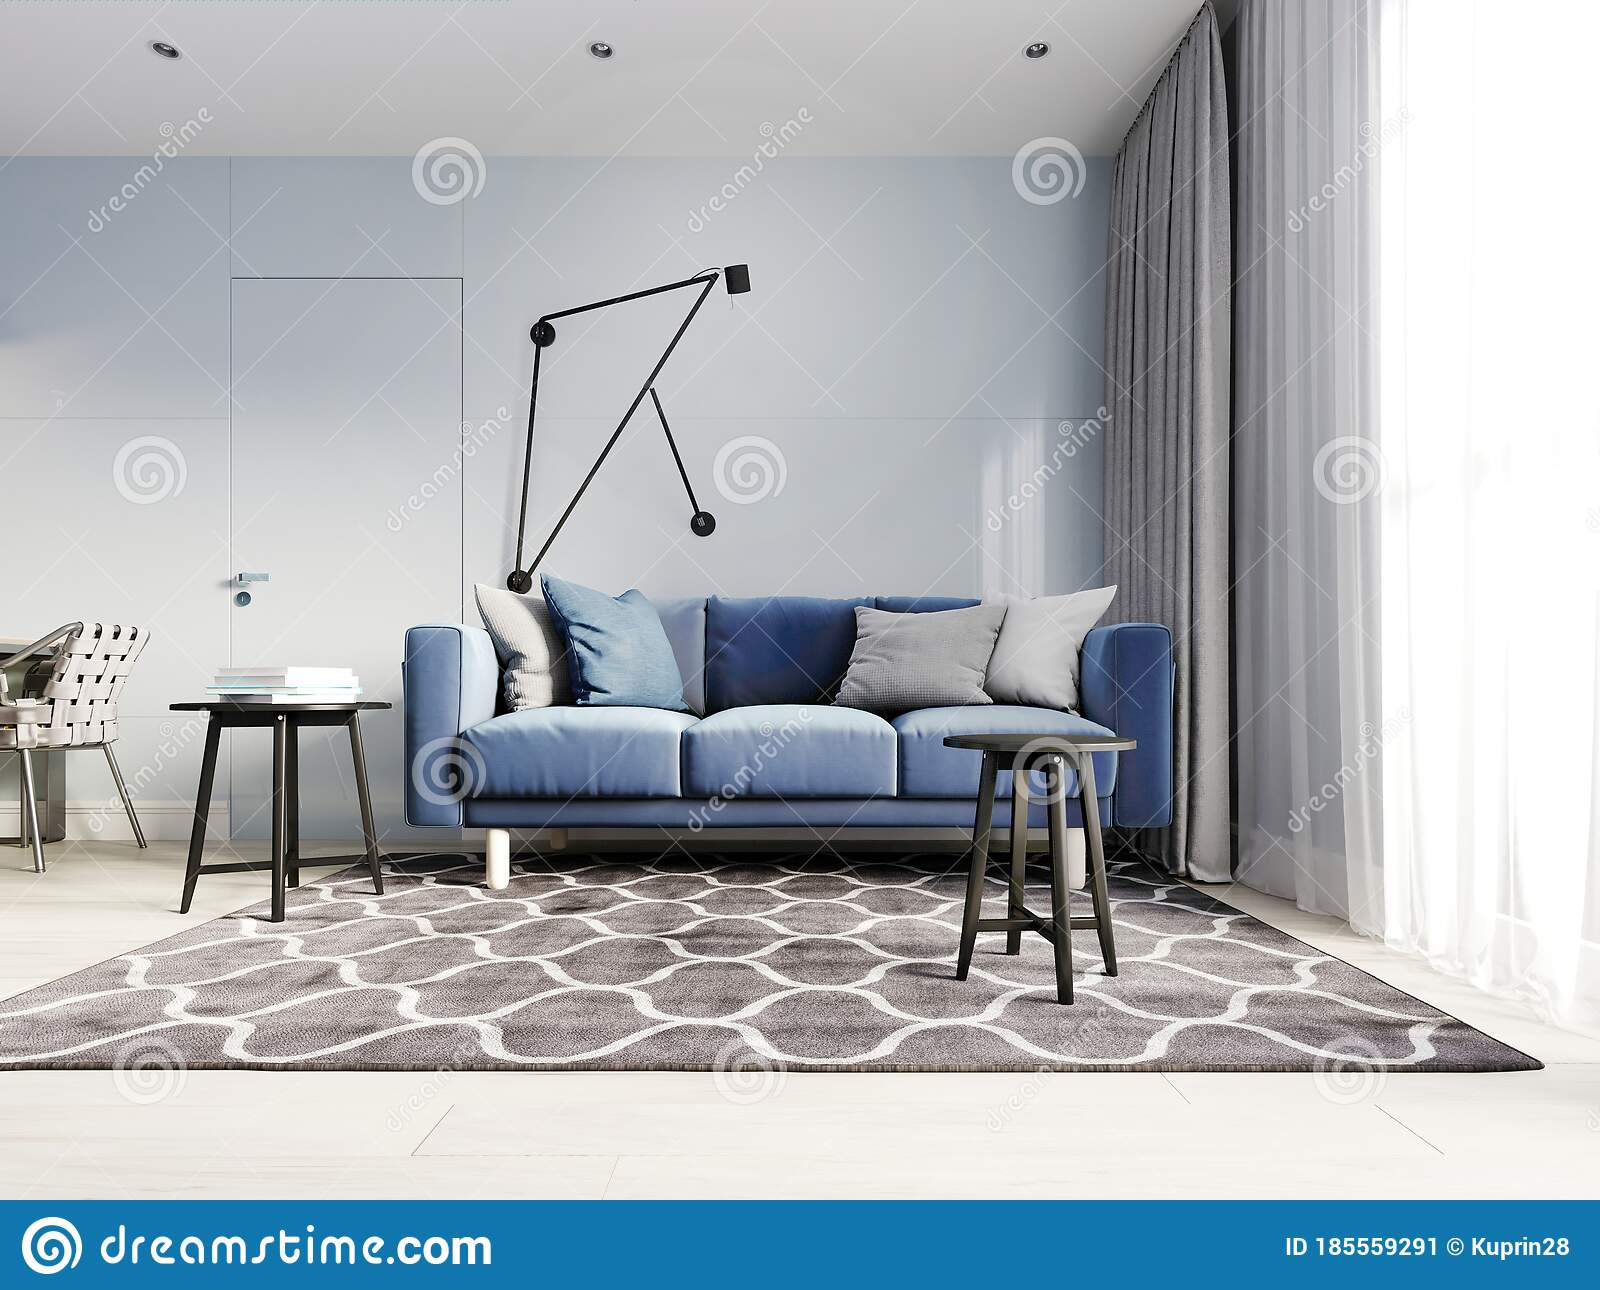 Nordic Design Living Room With A Modern Blue Sofa And Black Side Tables With Decor Scandinavian Contemporary Style Design Hinged Stock Illustration Illustration Of Living Melbourne 185559291